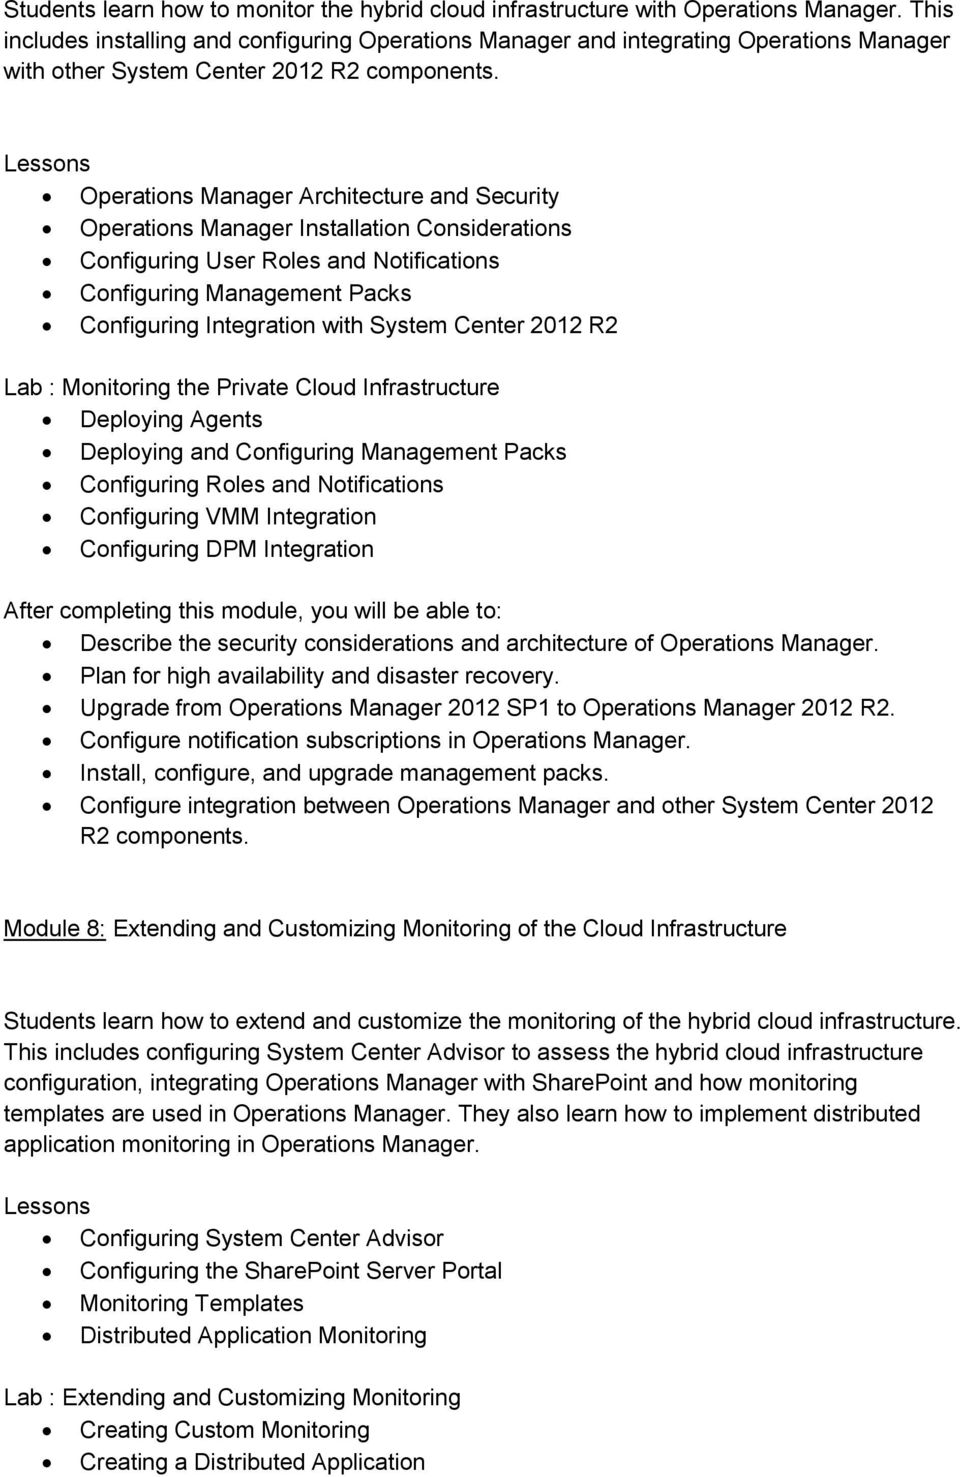 Operations Manager Architecture and Security Operations Manager Installation Considerations Configuring User Roles and Notifications Configuring Management Packs Configuring Integration with System